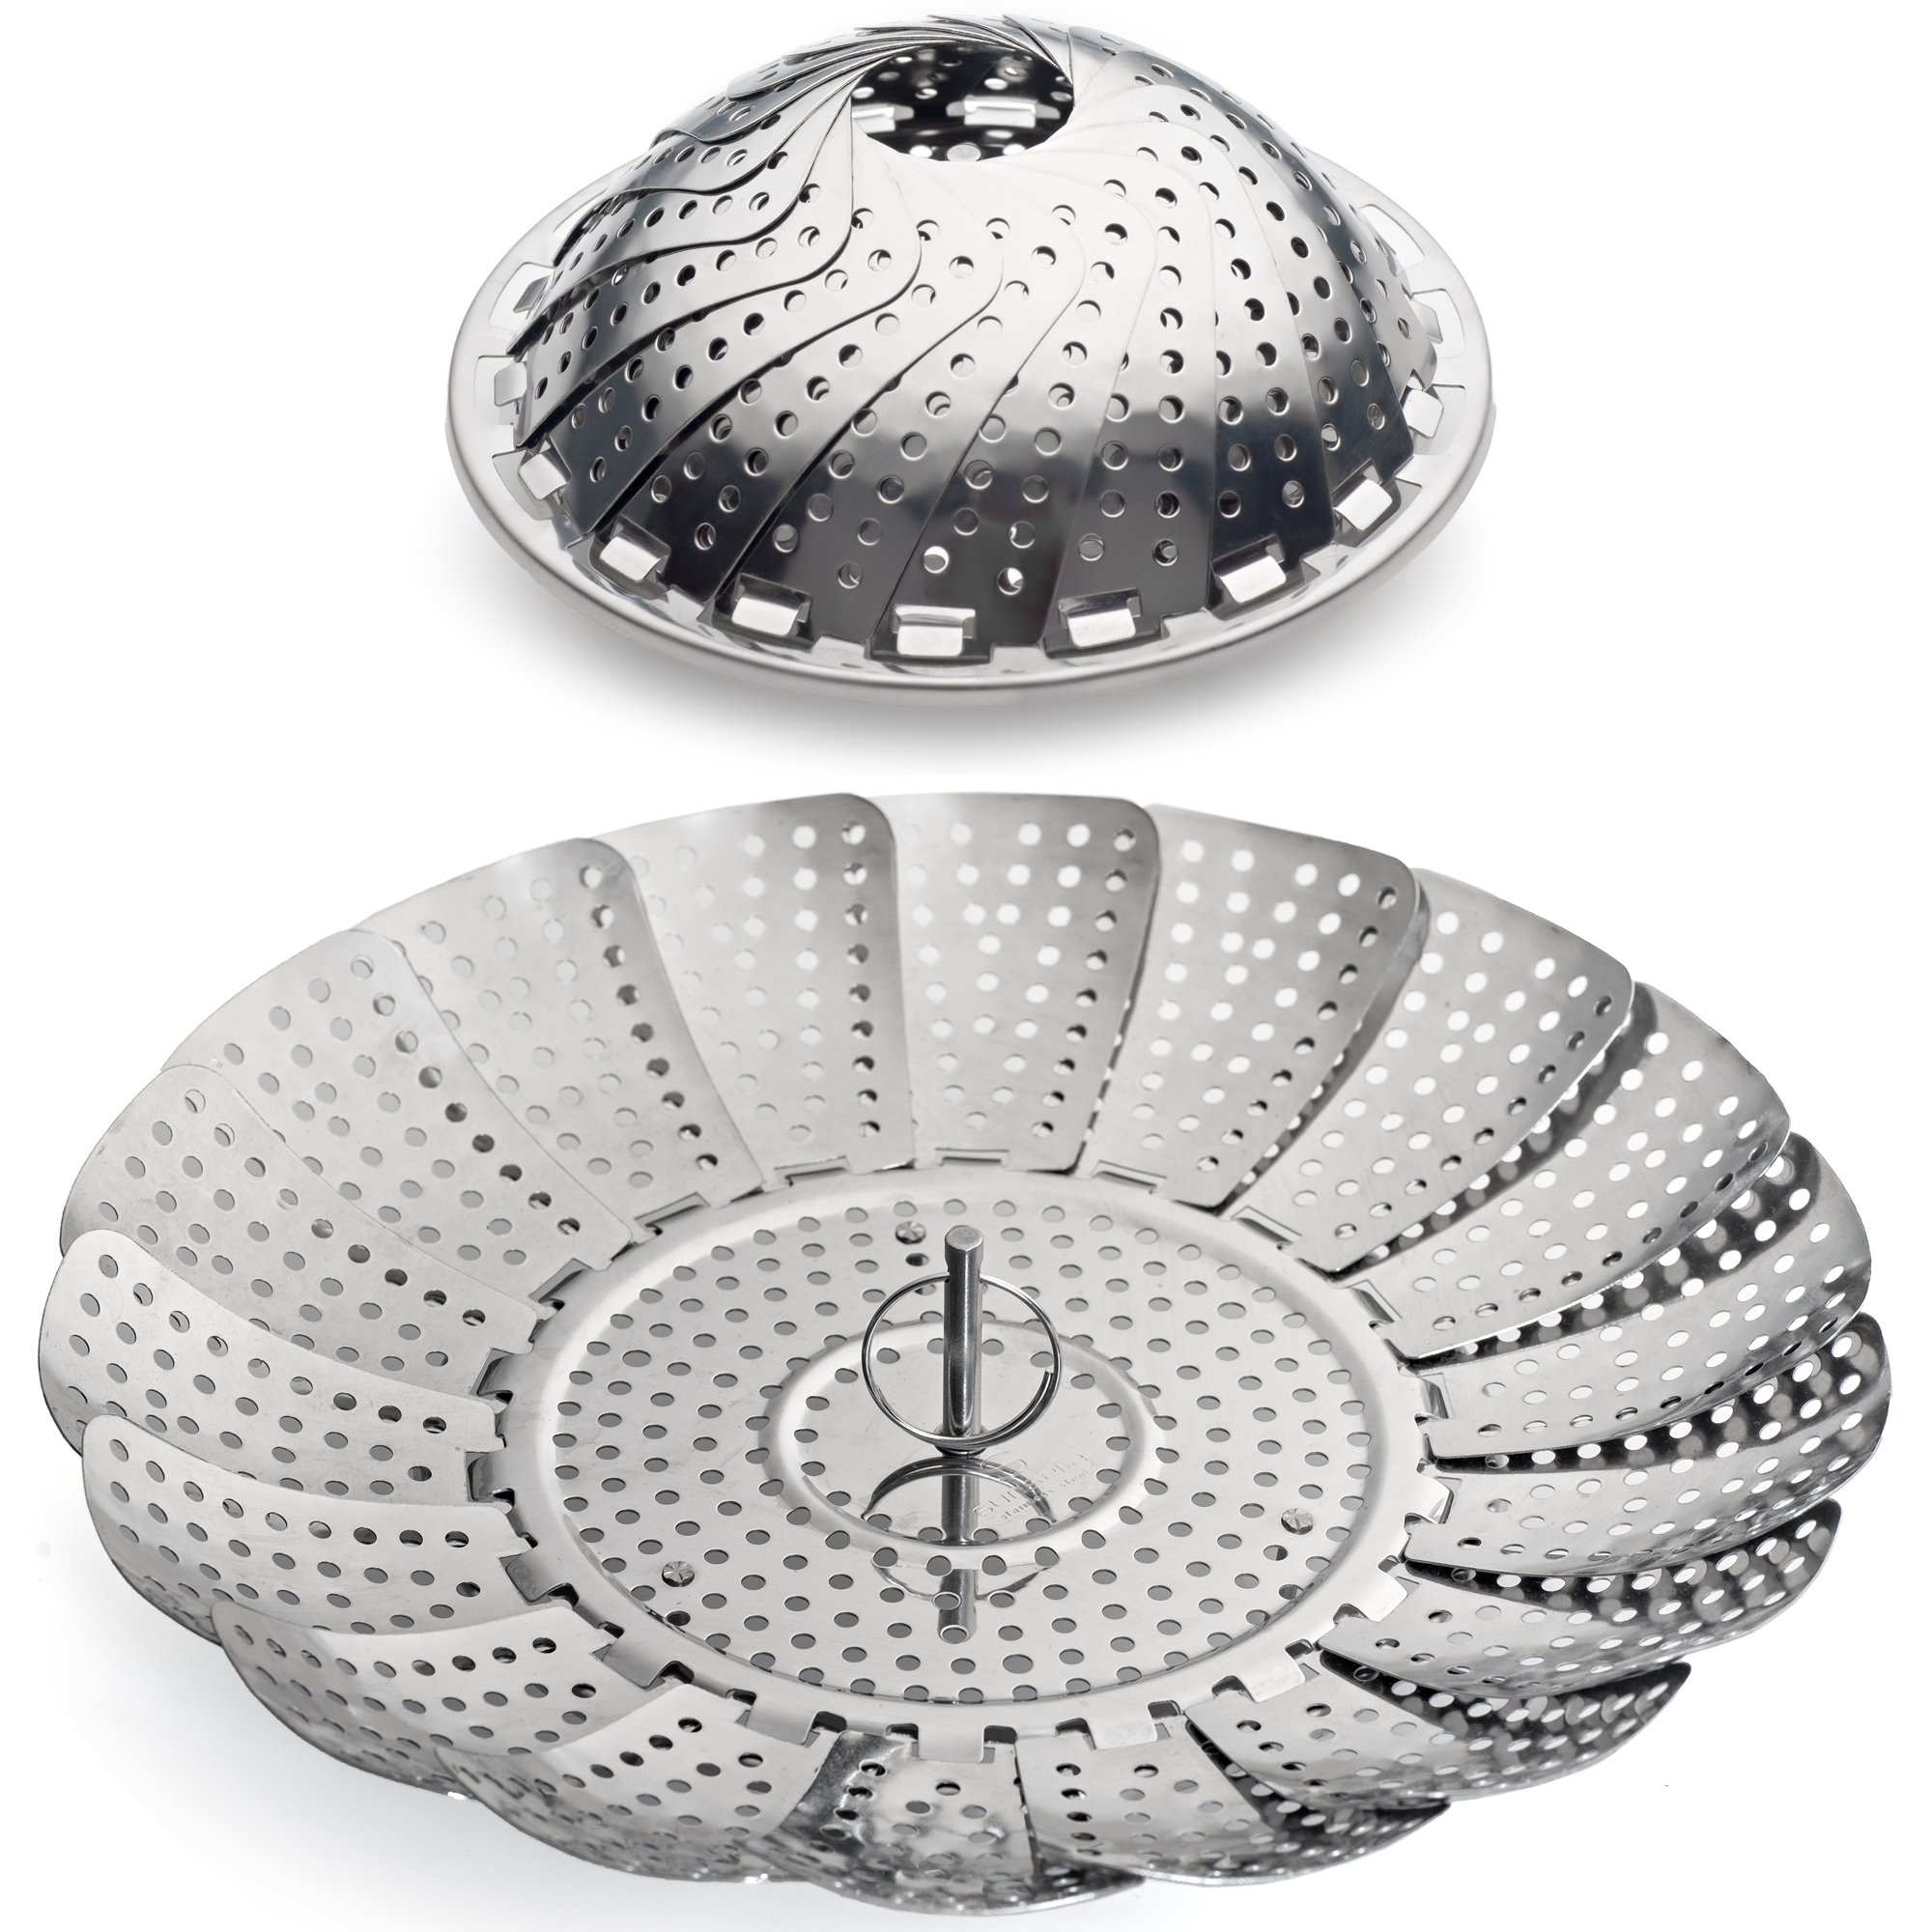 100% Stainless Steel Vegetable Steamer Basket/Insert for Pots, Pans, Crock Pots & more. 5.5'' to 9.3'' - Includes bonus Extension Handle.By Sunsella